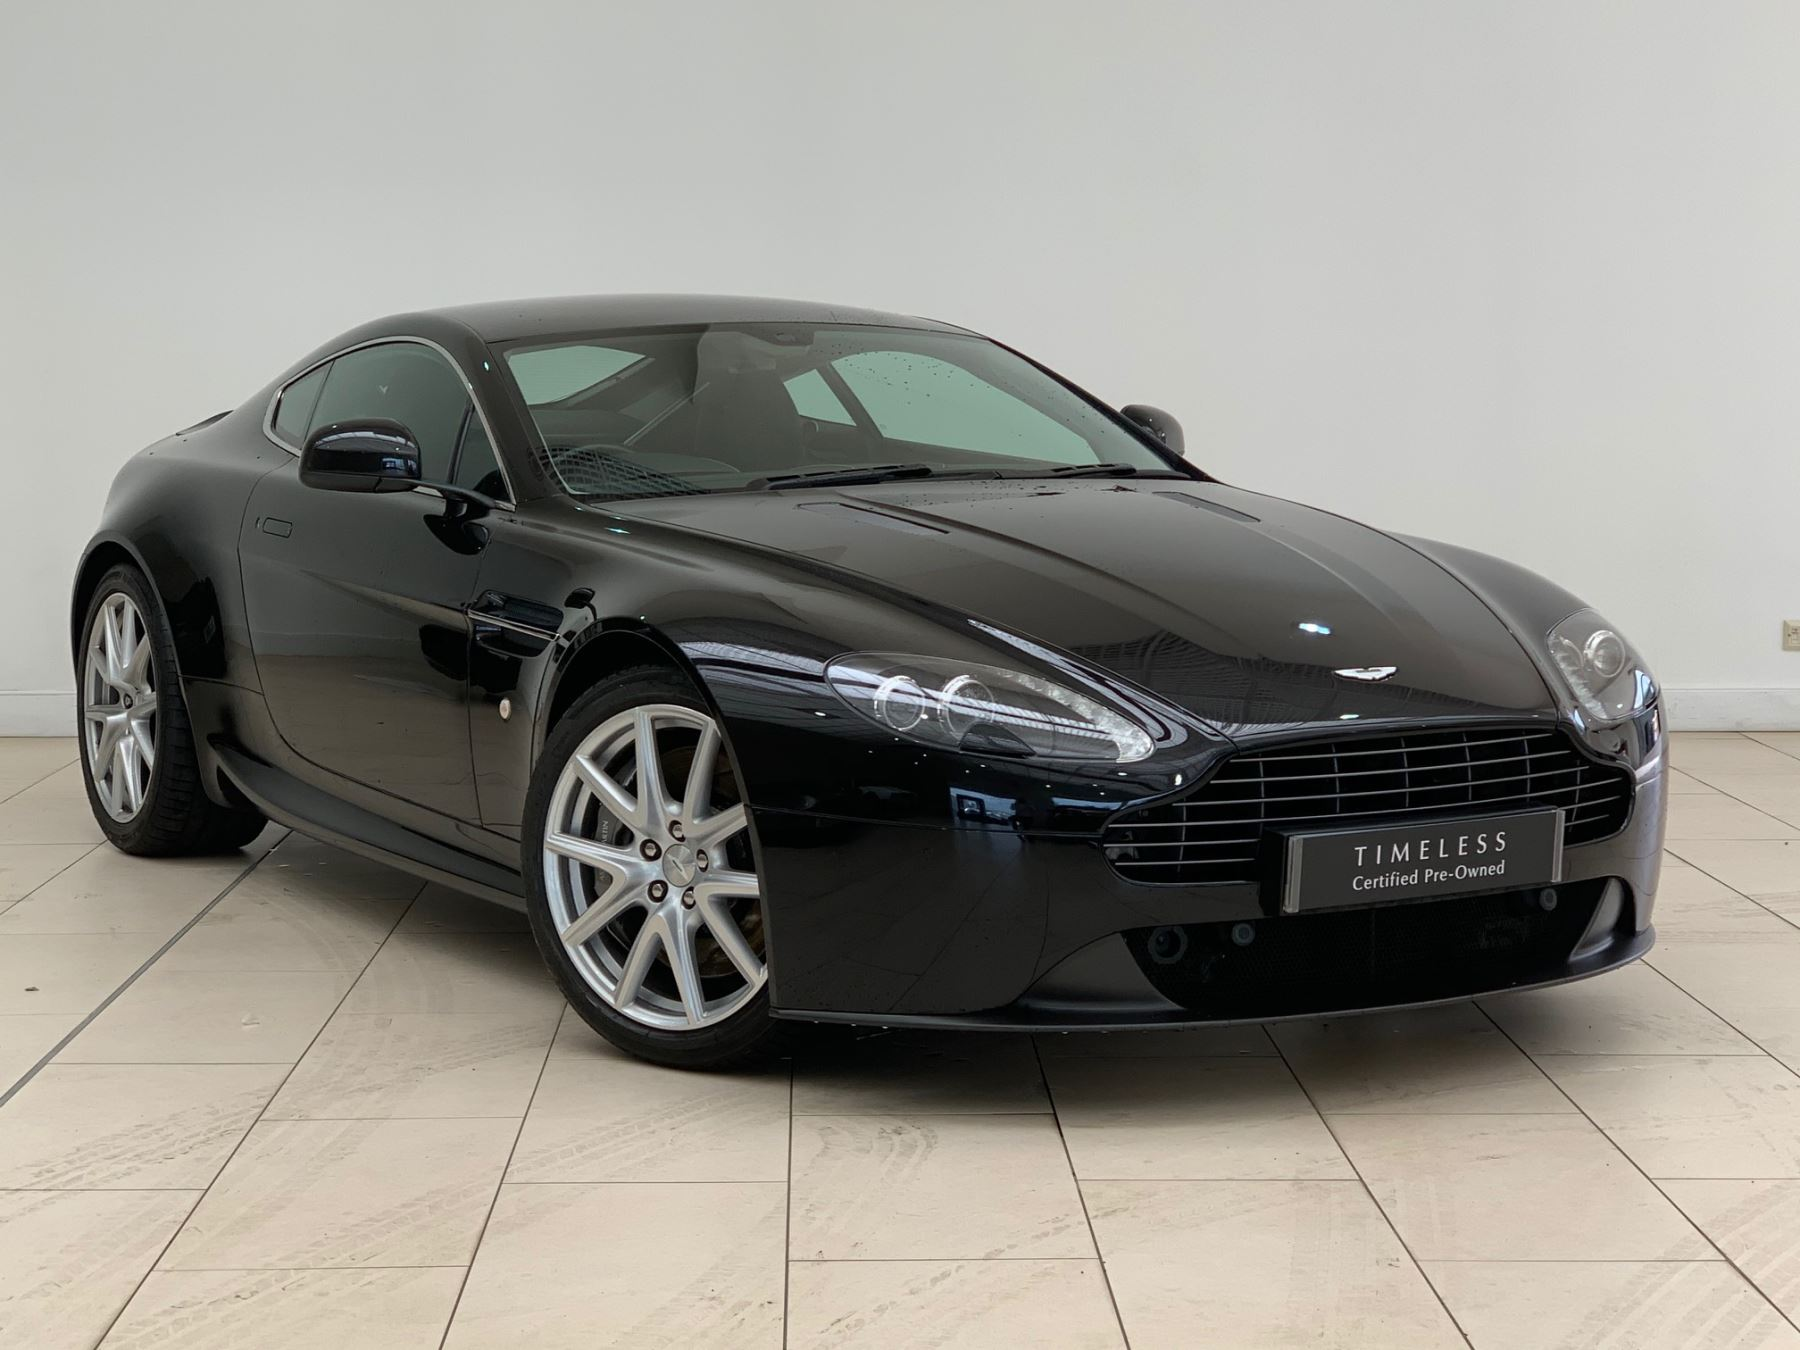 Aston Martin V8 Vantage Coupe 2dr [420] 4.7 3 door Coupe (2014)